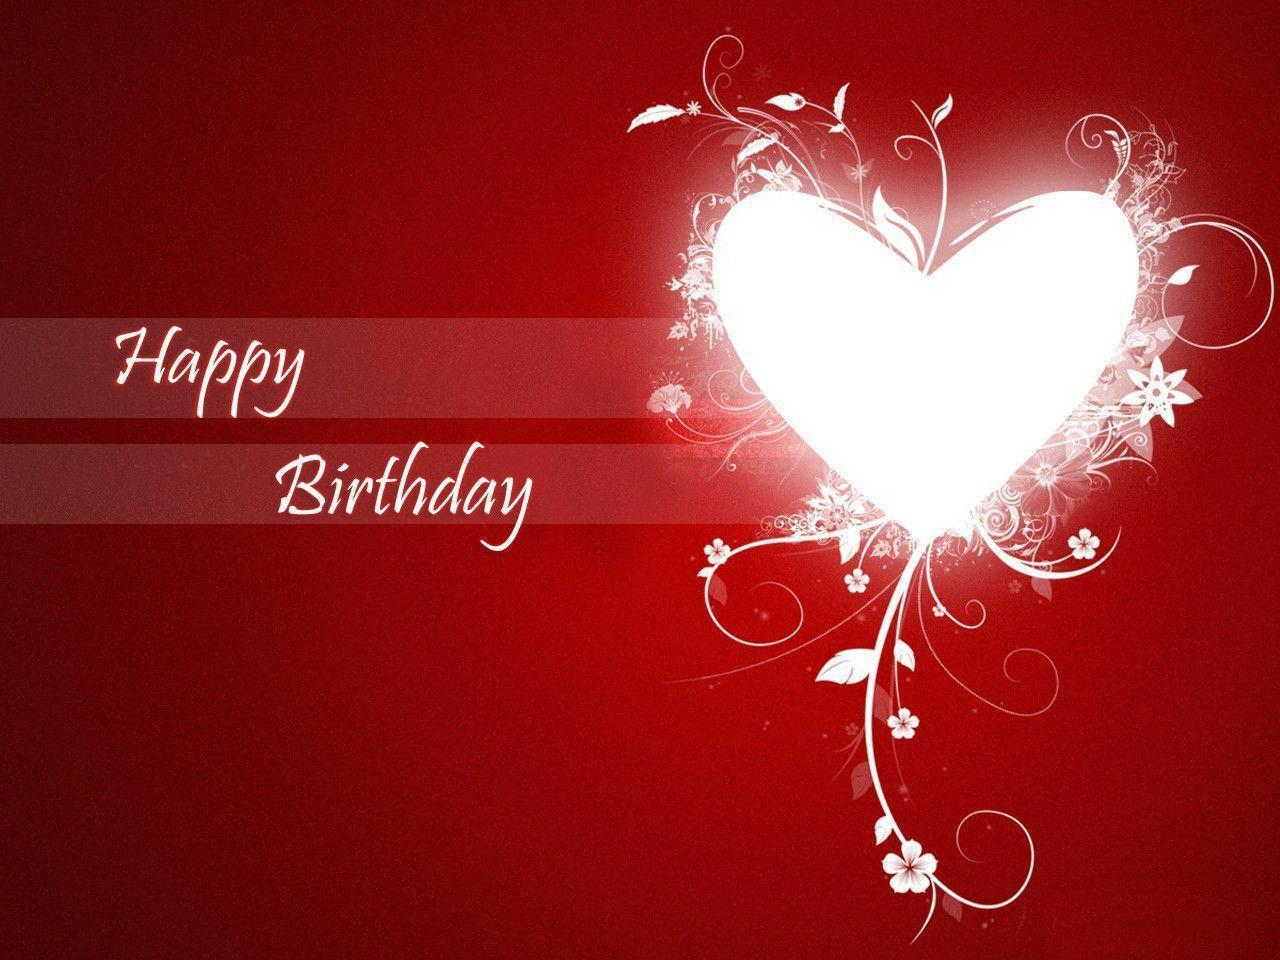 Happy Birthday Love Wallpapers - Wallpaper Cave